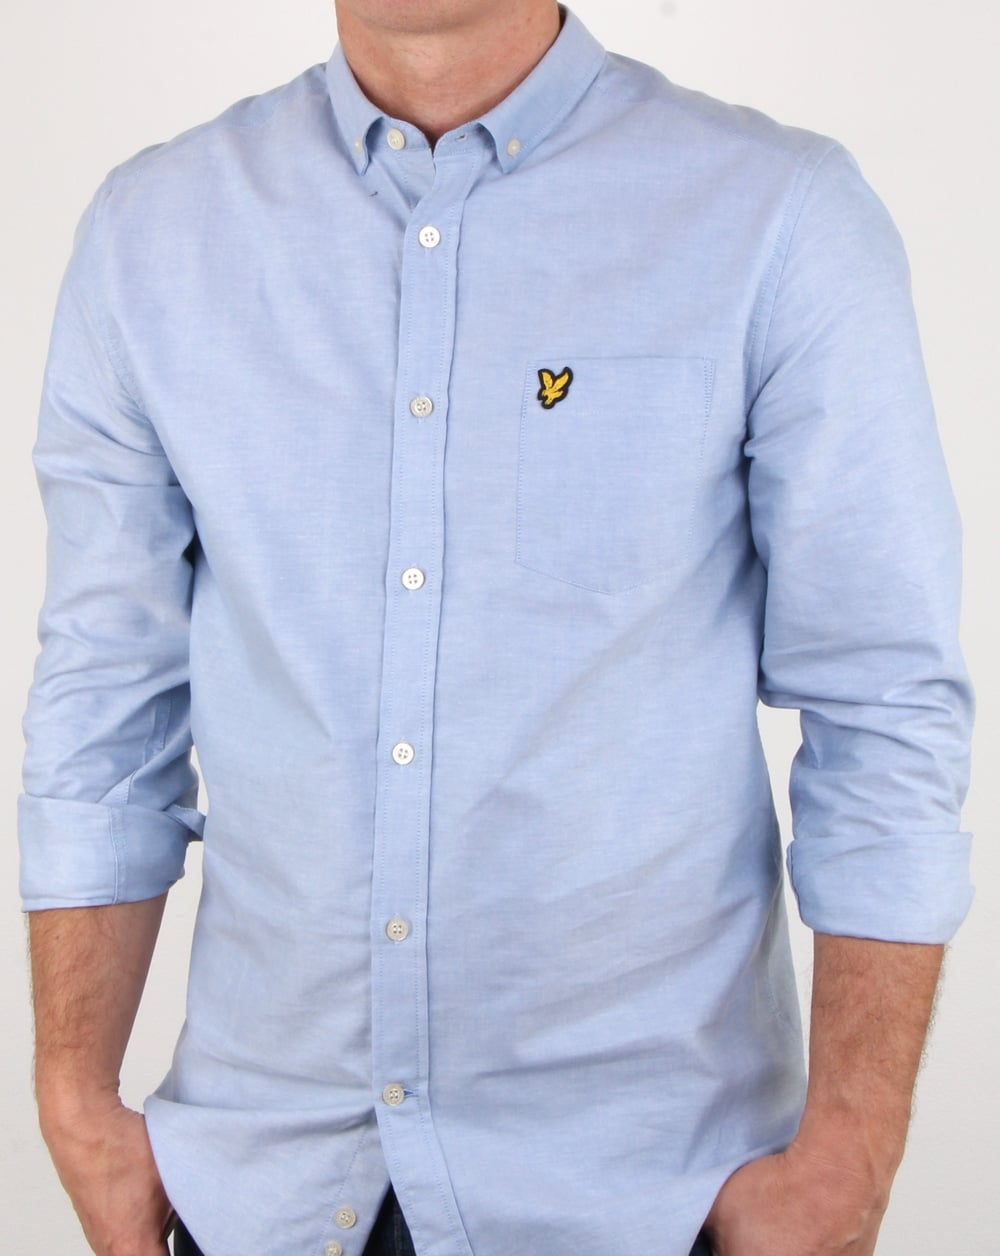 ee2fcb3836c Lyle And Scott Oxford Shirt Riviera Pale Blue